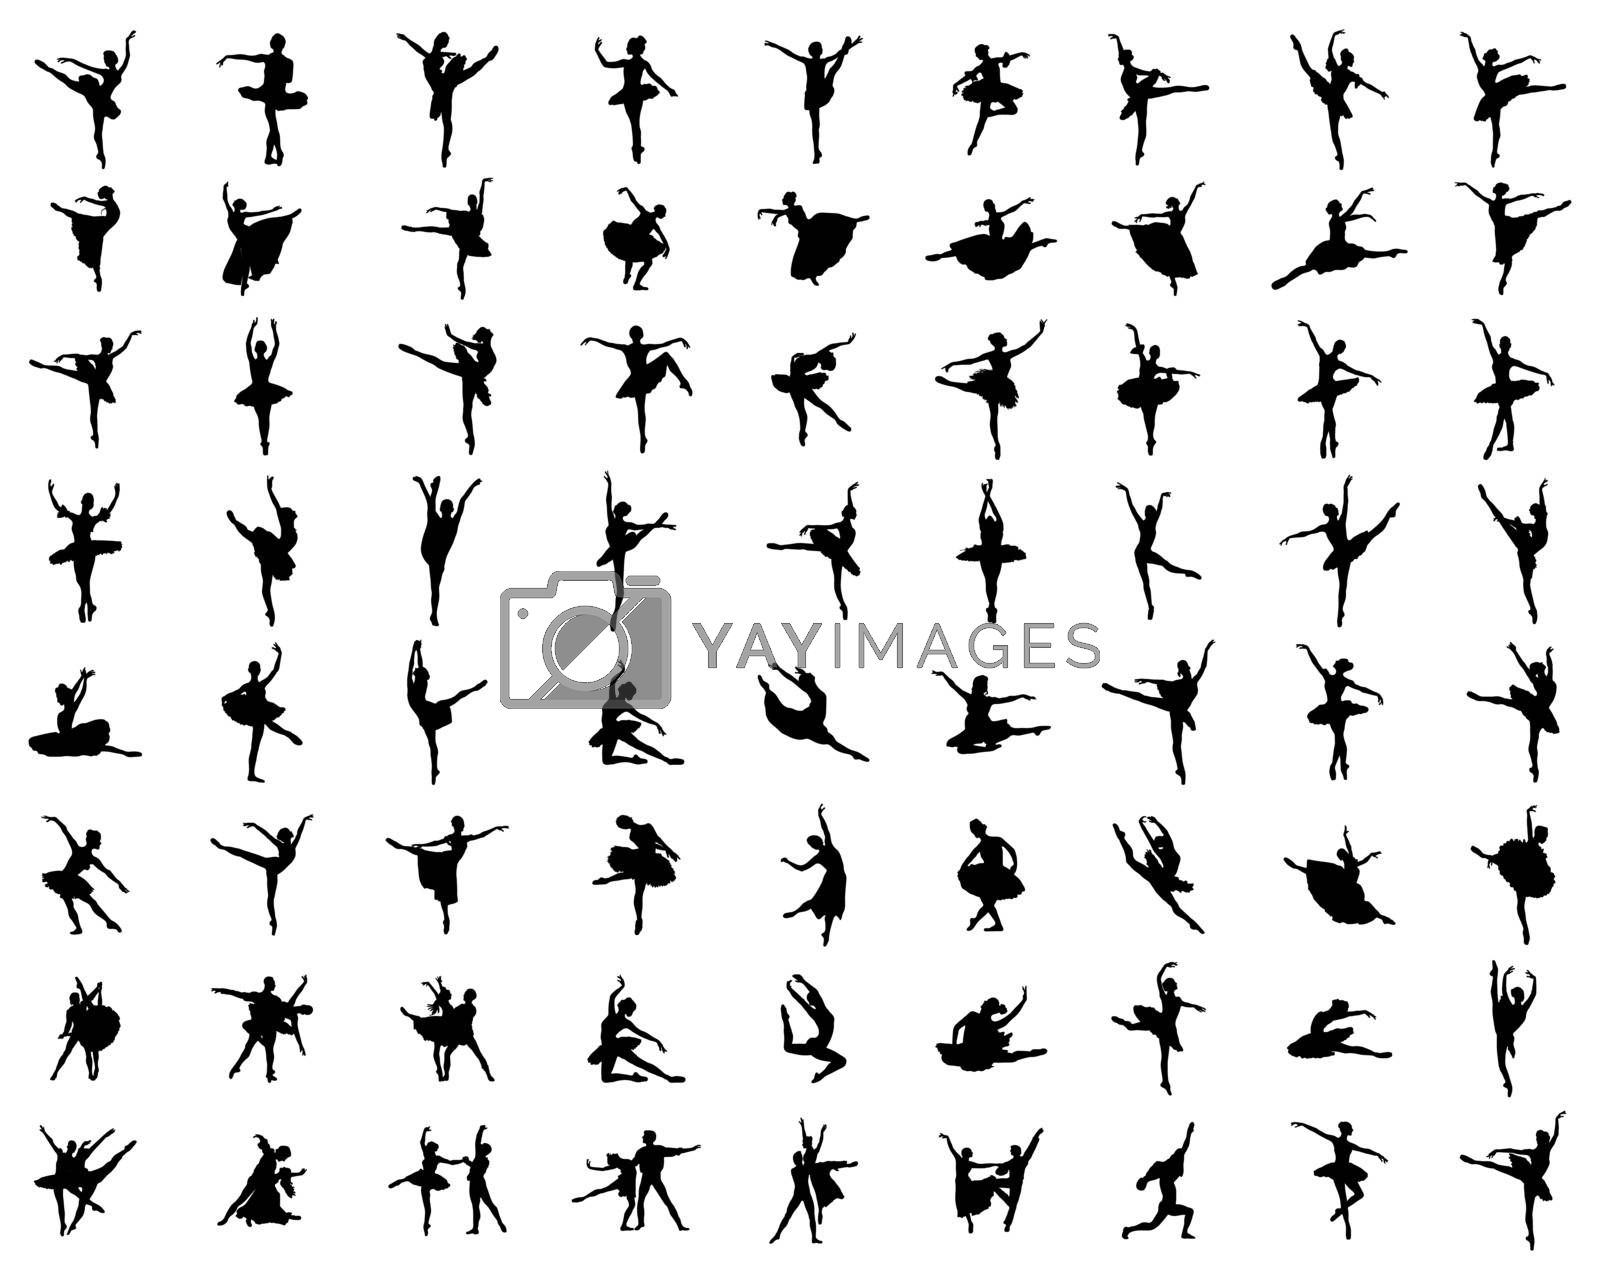 silhouettes of ballerinas by ratkomat